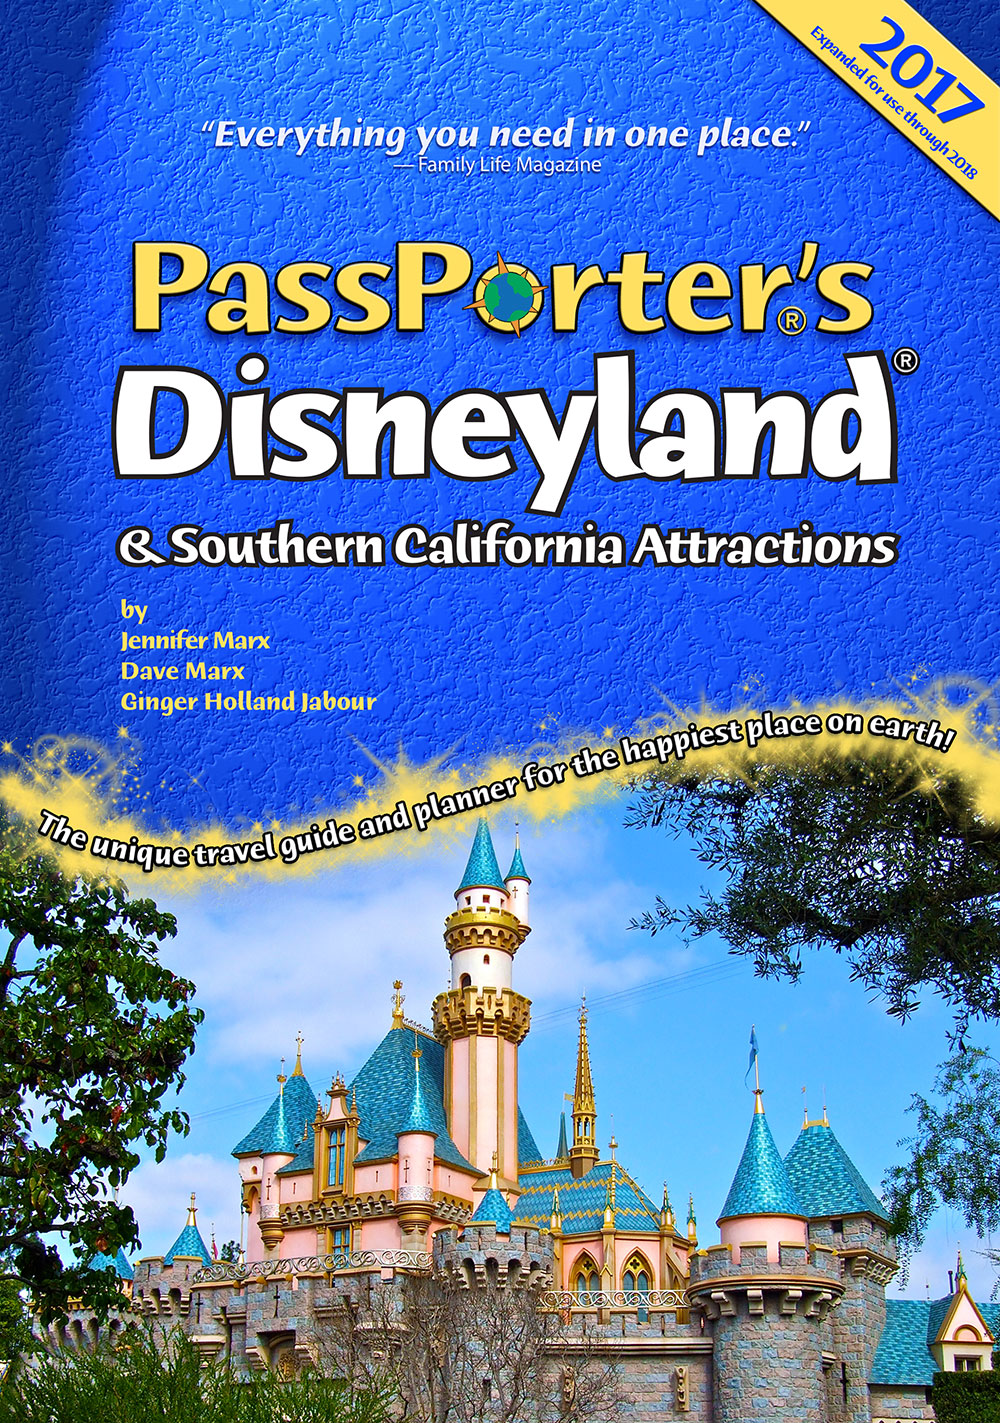 Design the perfect trip with PassPorter's Disneyland Resort Guidebook! | PassPorter.com